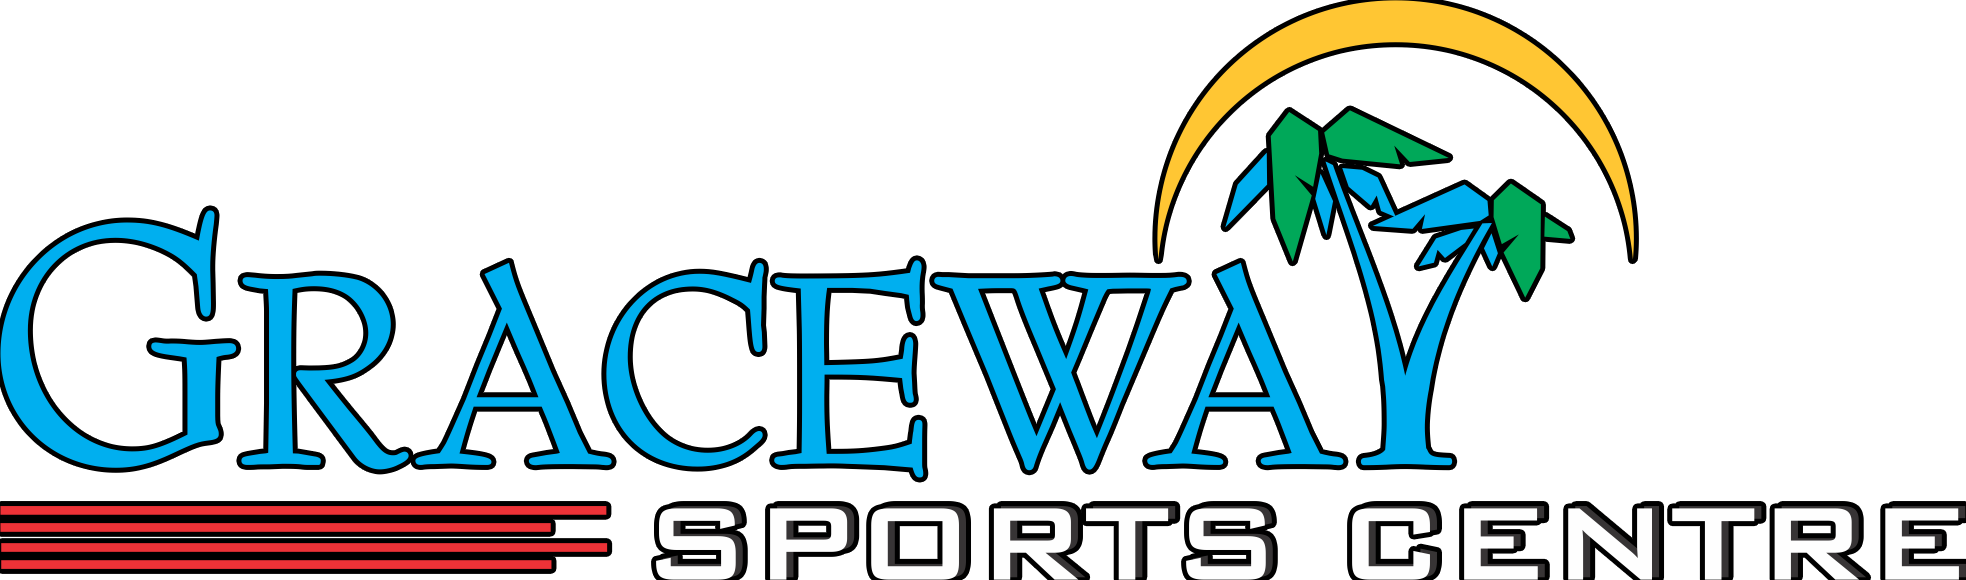 About | Graceway Sports Center